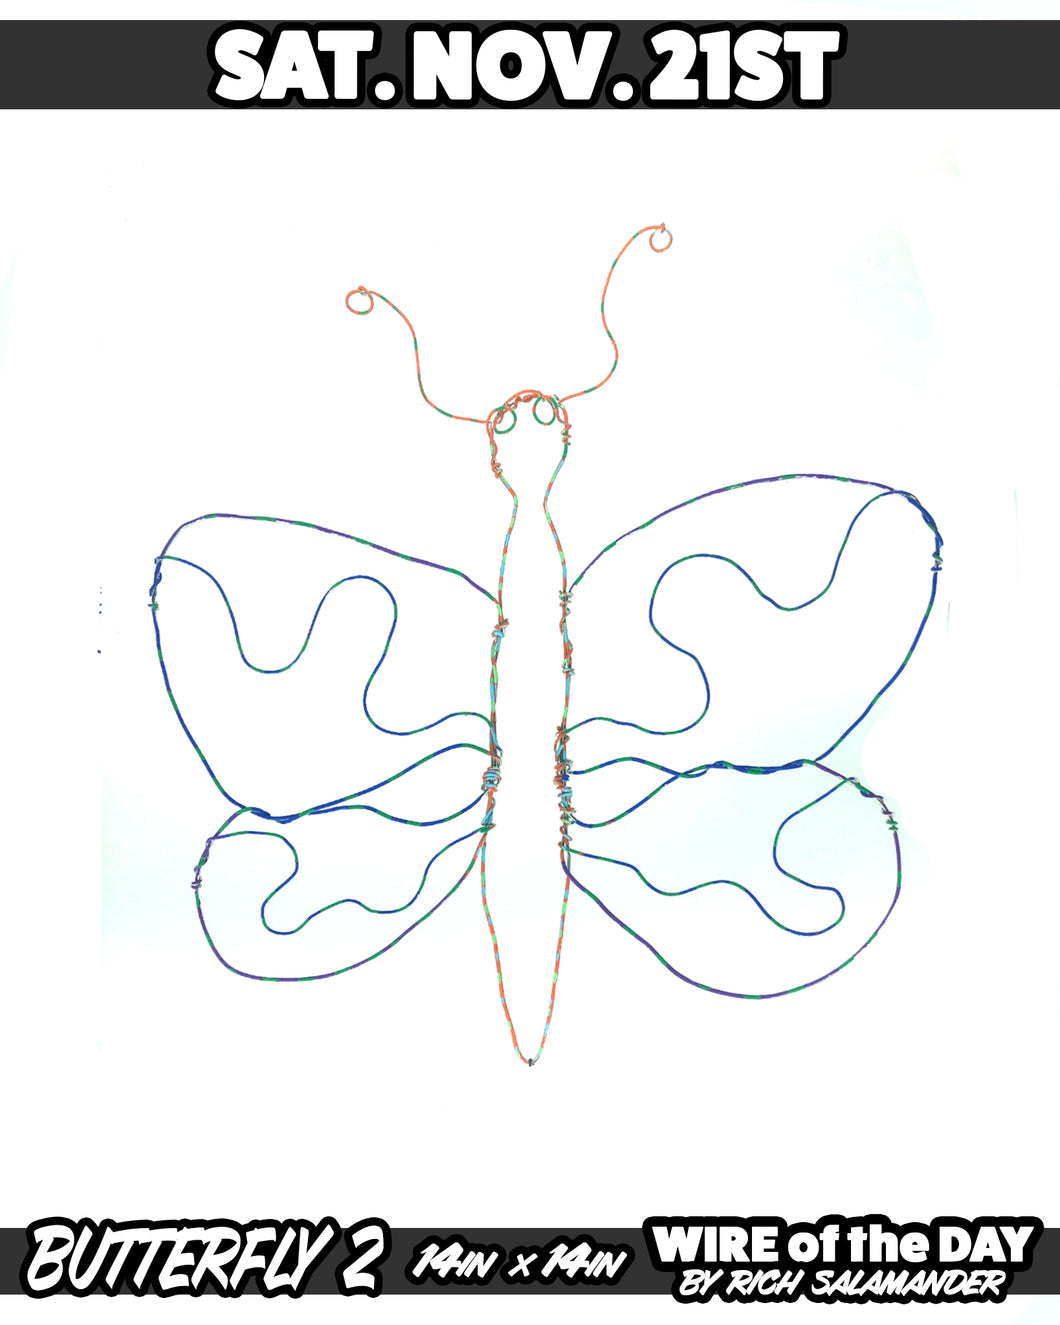 WIRE of the DAY BUTTERFLY 2